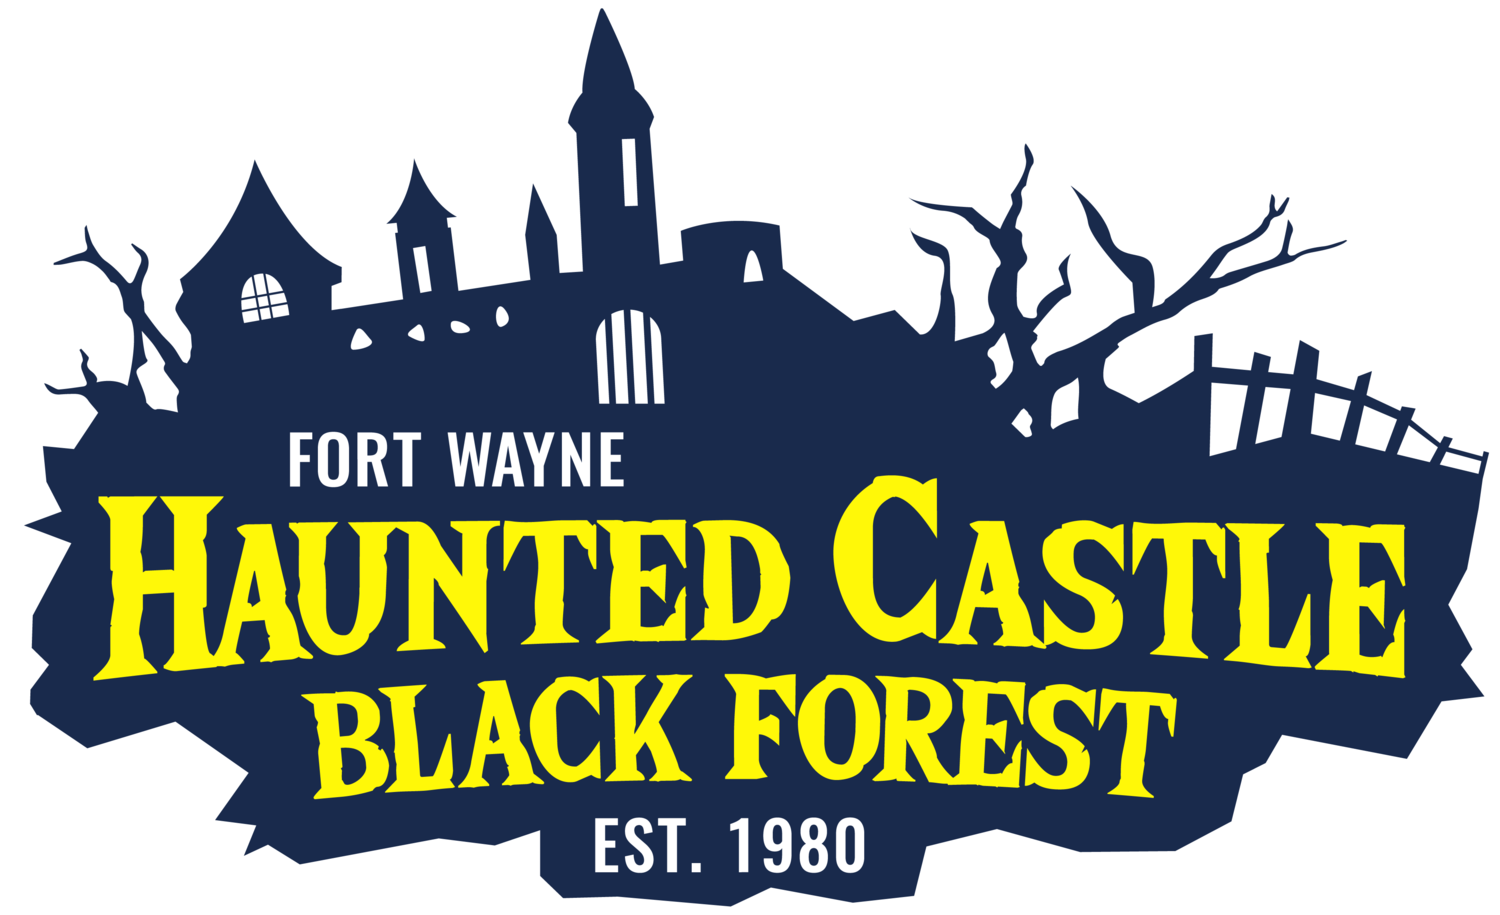 The Haunted Castle and Black Forest